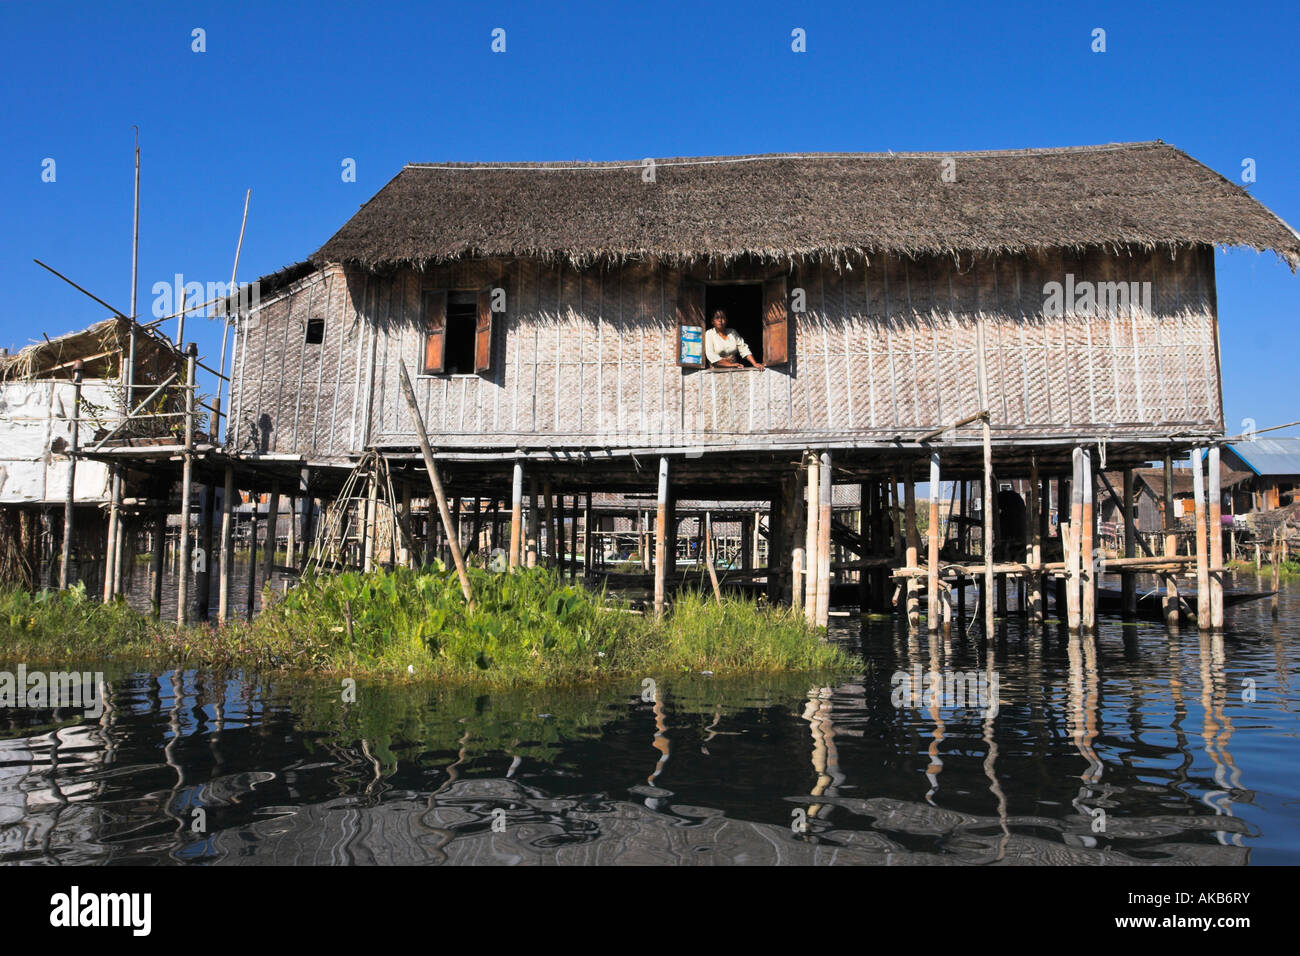 Myanmar (Burma), Shan State, Inle Lake, house on stilts in floating village Stock Photo